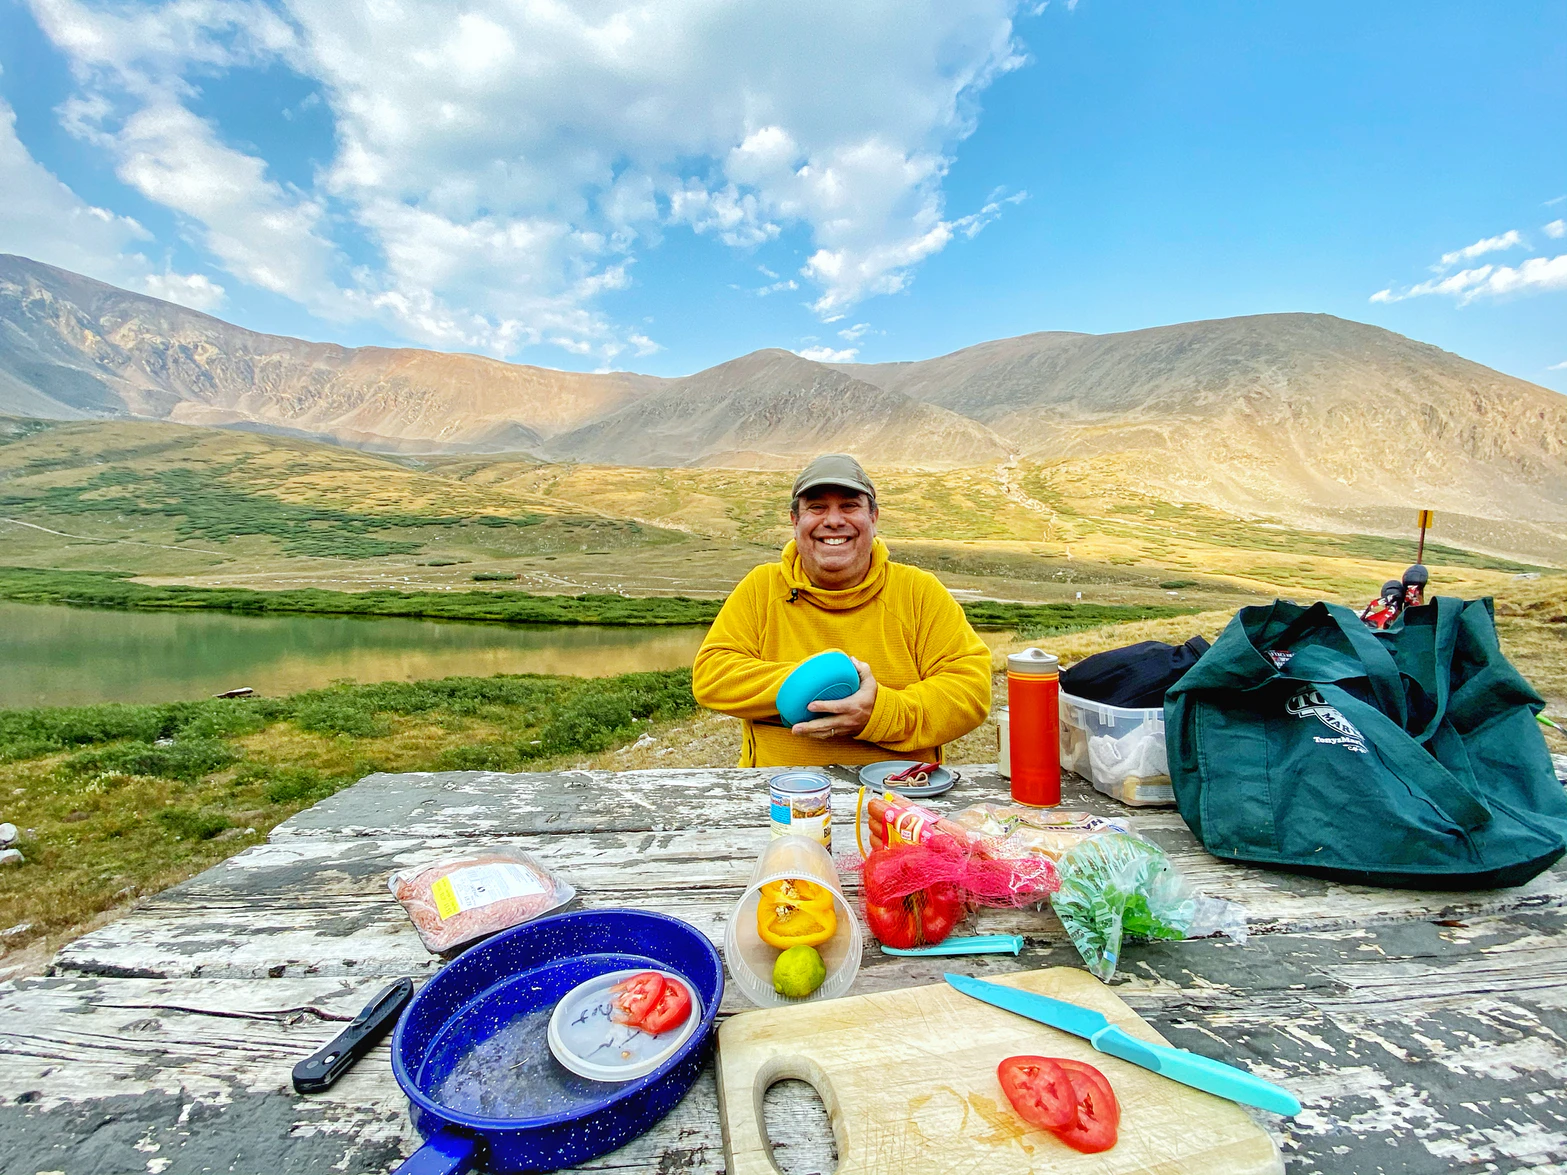 What to eat at high altitudes